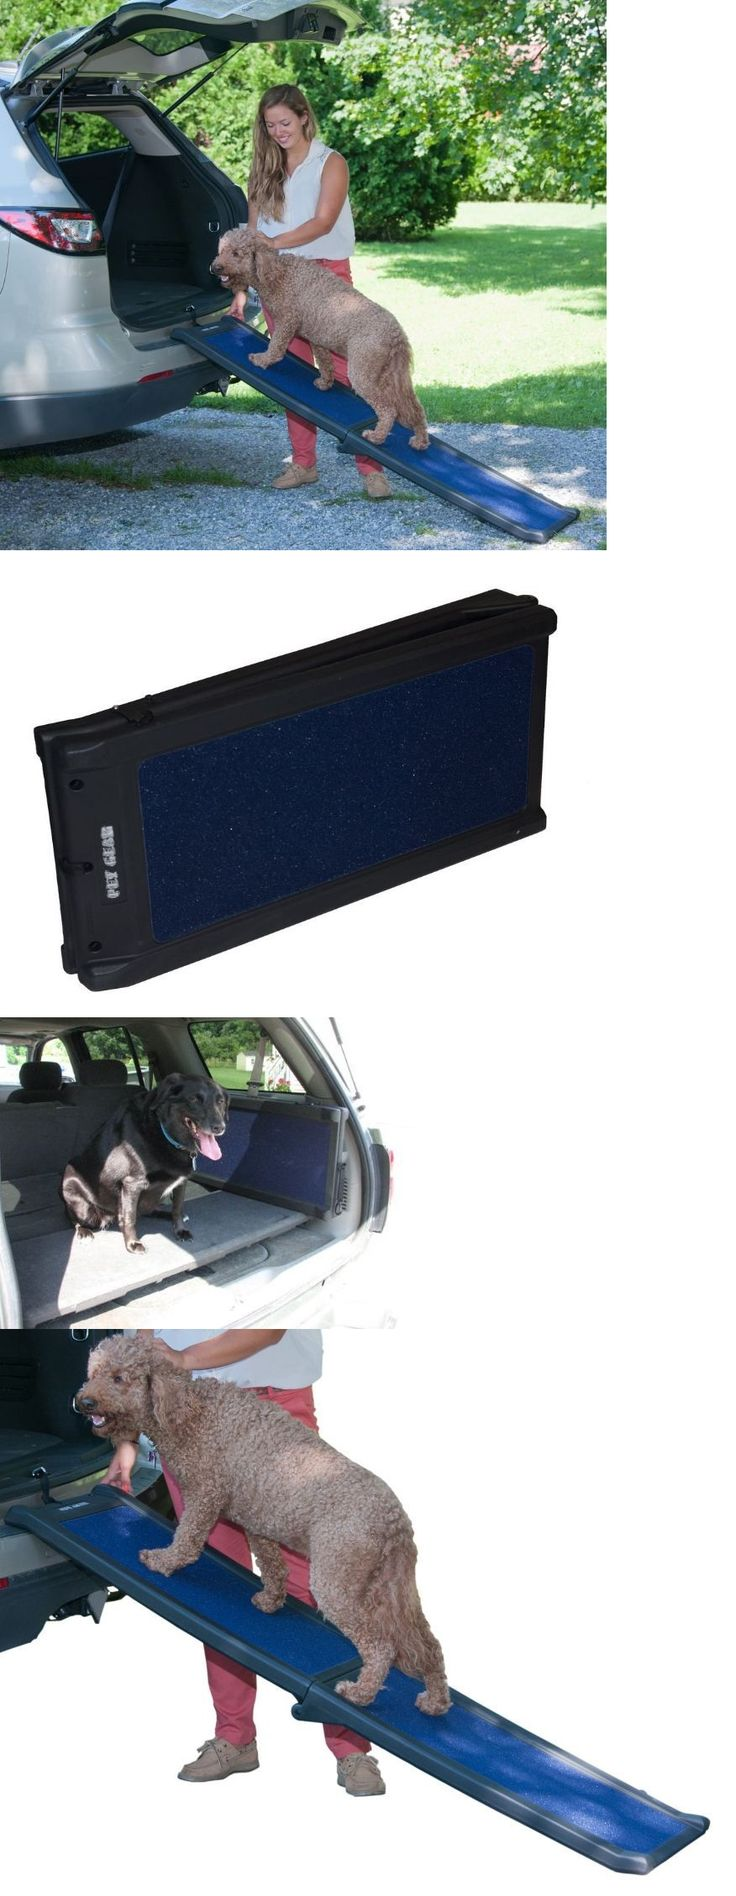 Ramps and Stairs 116389: Folding Portable Pet Ramps And Steps For Large Dogs Folding Suv Car Truck BUY IT NOW ONLY: $67.99